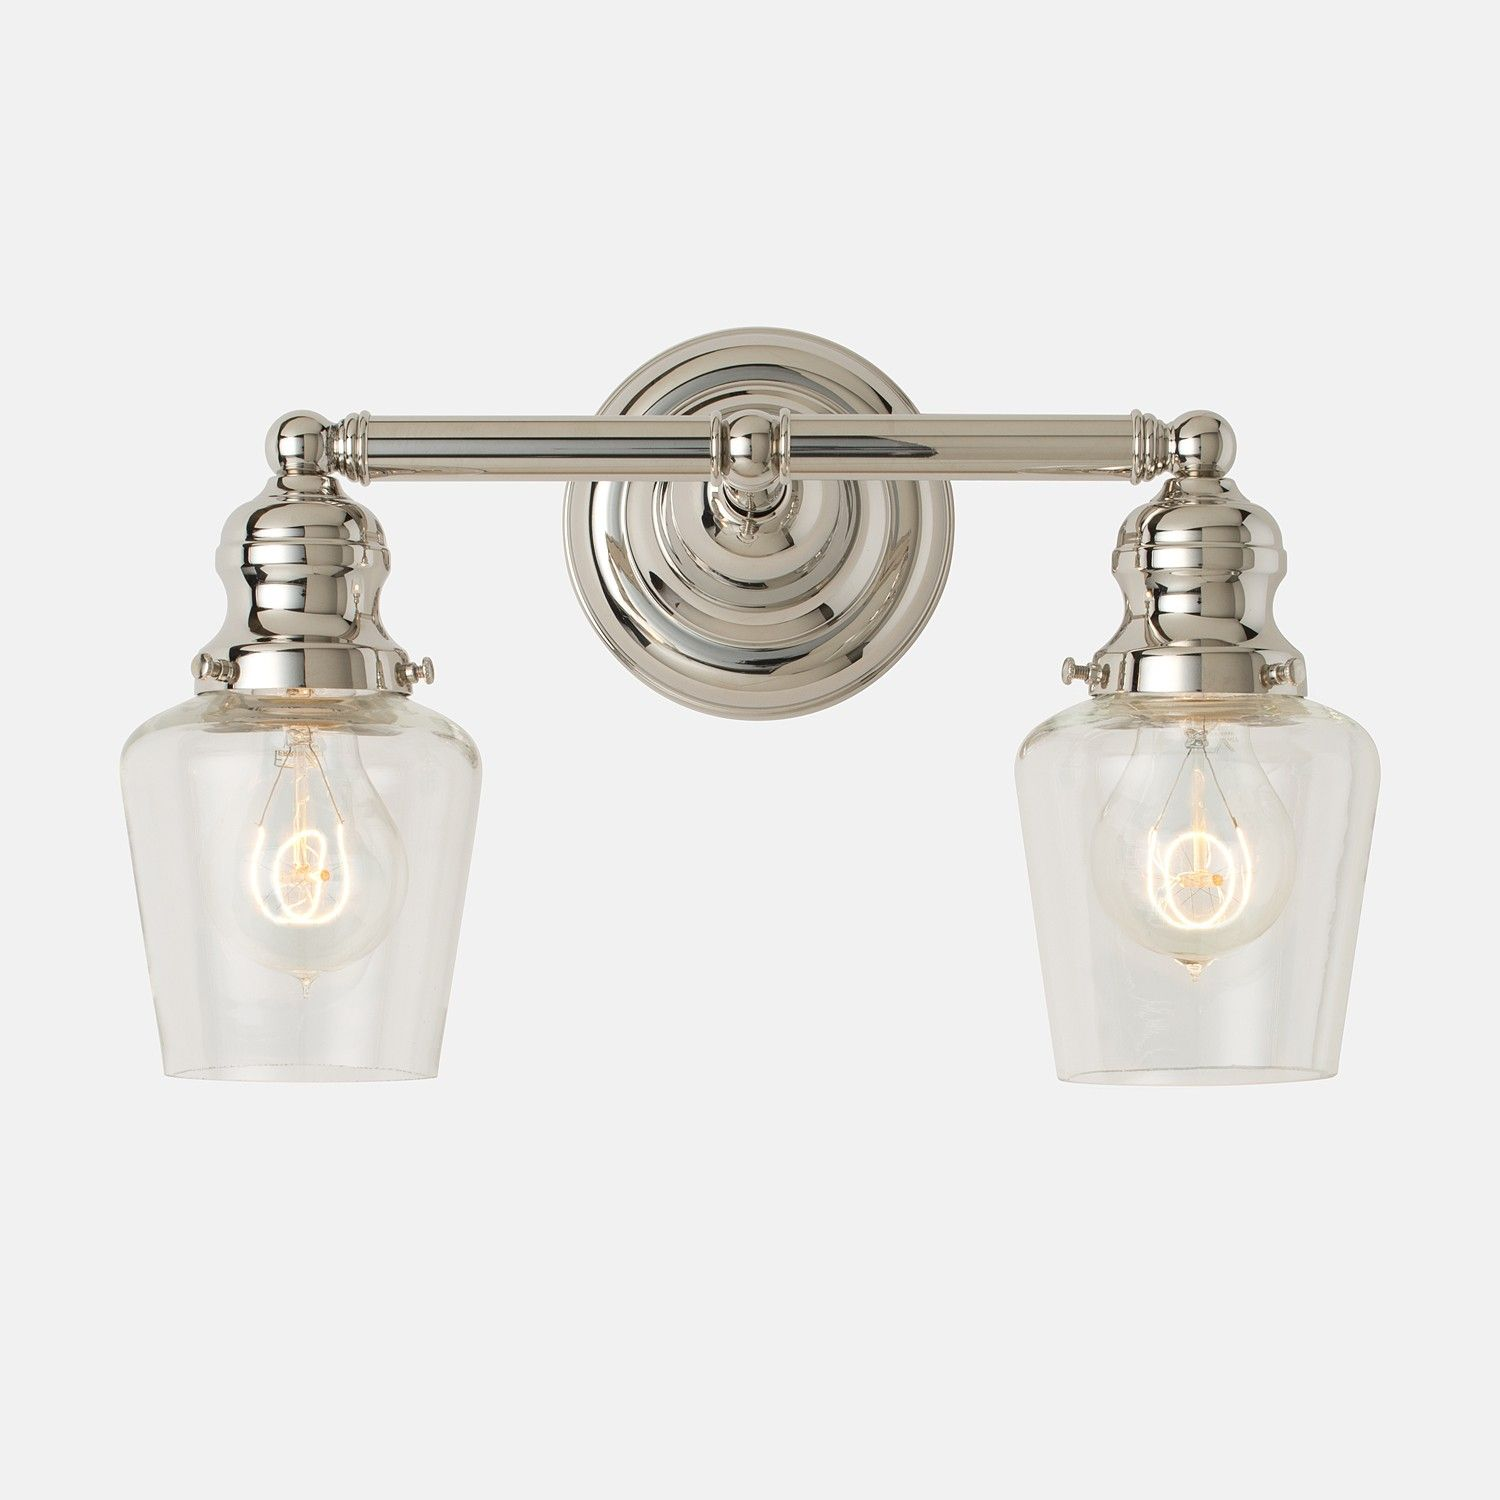 Explore Bathroom Lighting Fixtures And More! Montclair Double Sconce 2.25